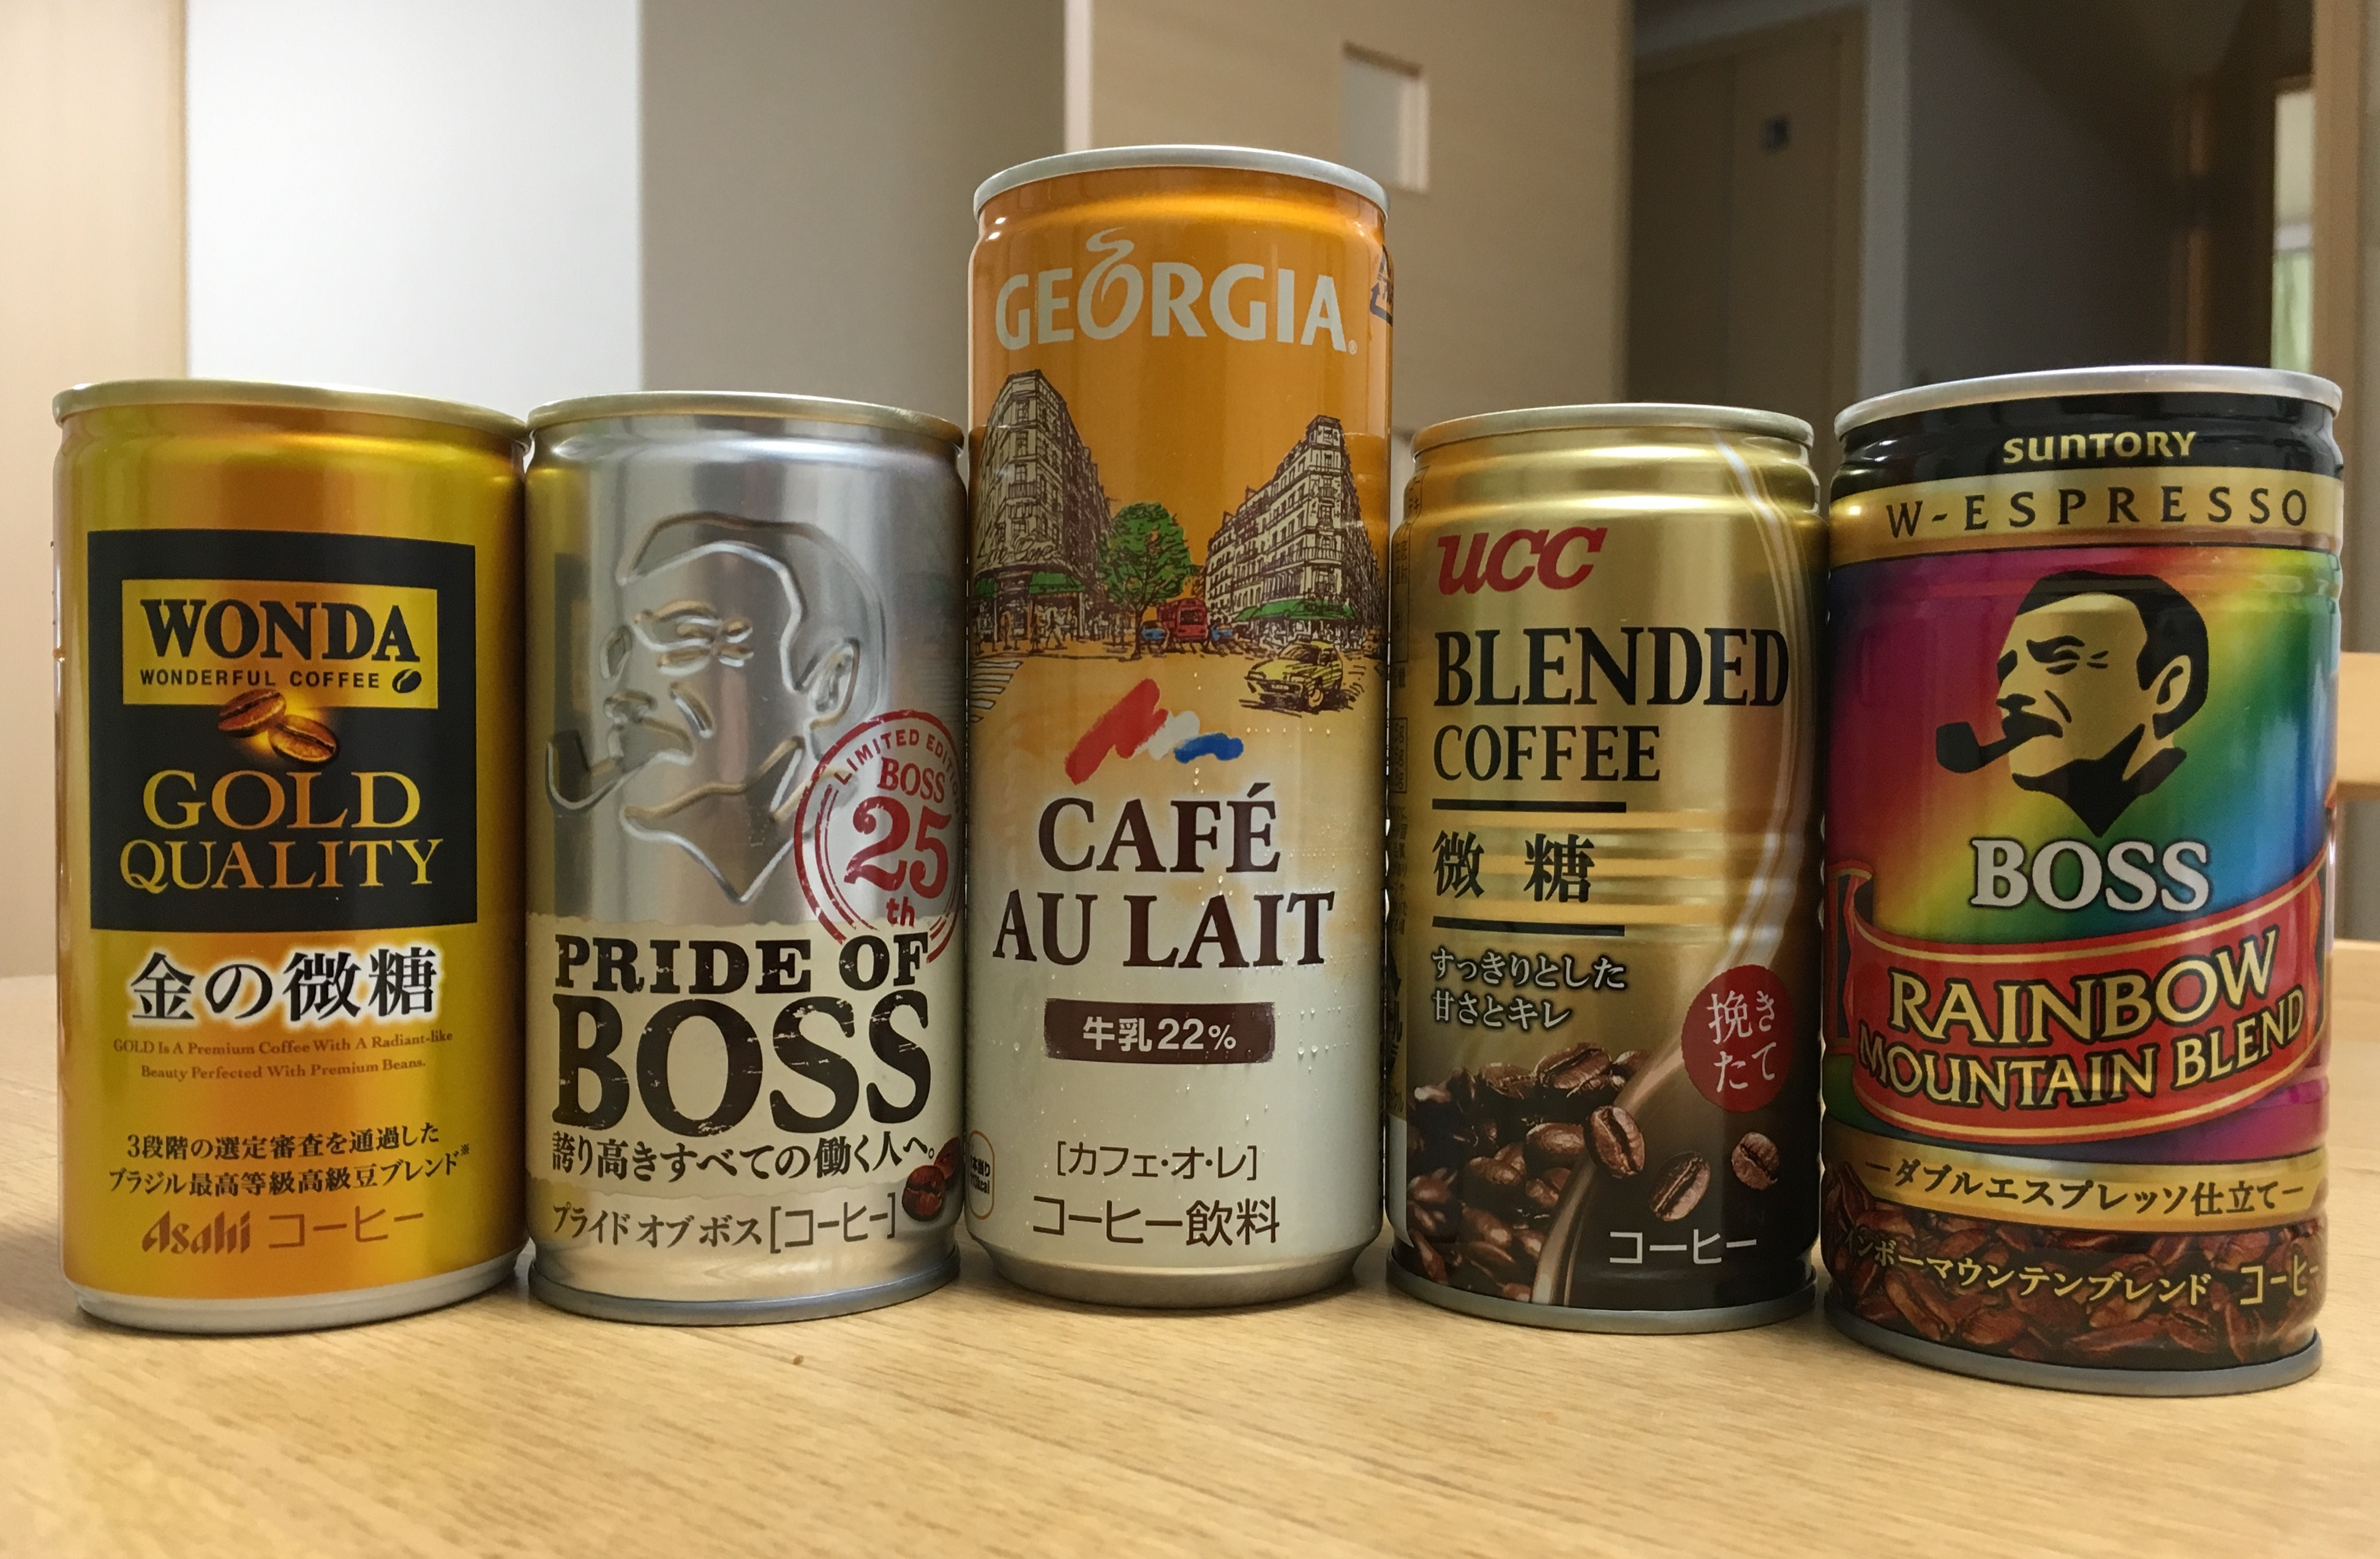 an array of some of the most popular brands of canned coffee in Japan